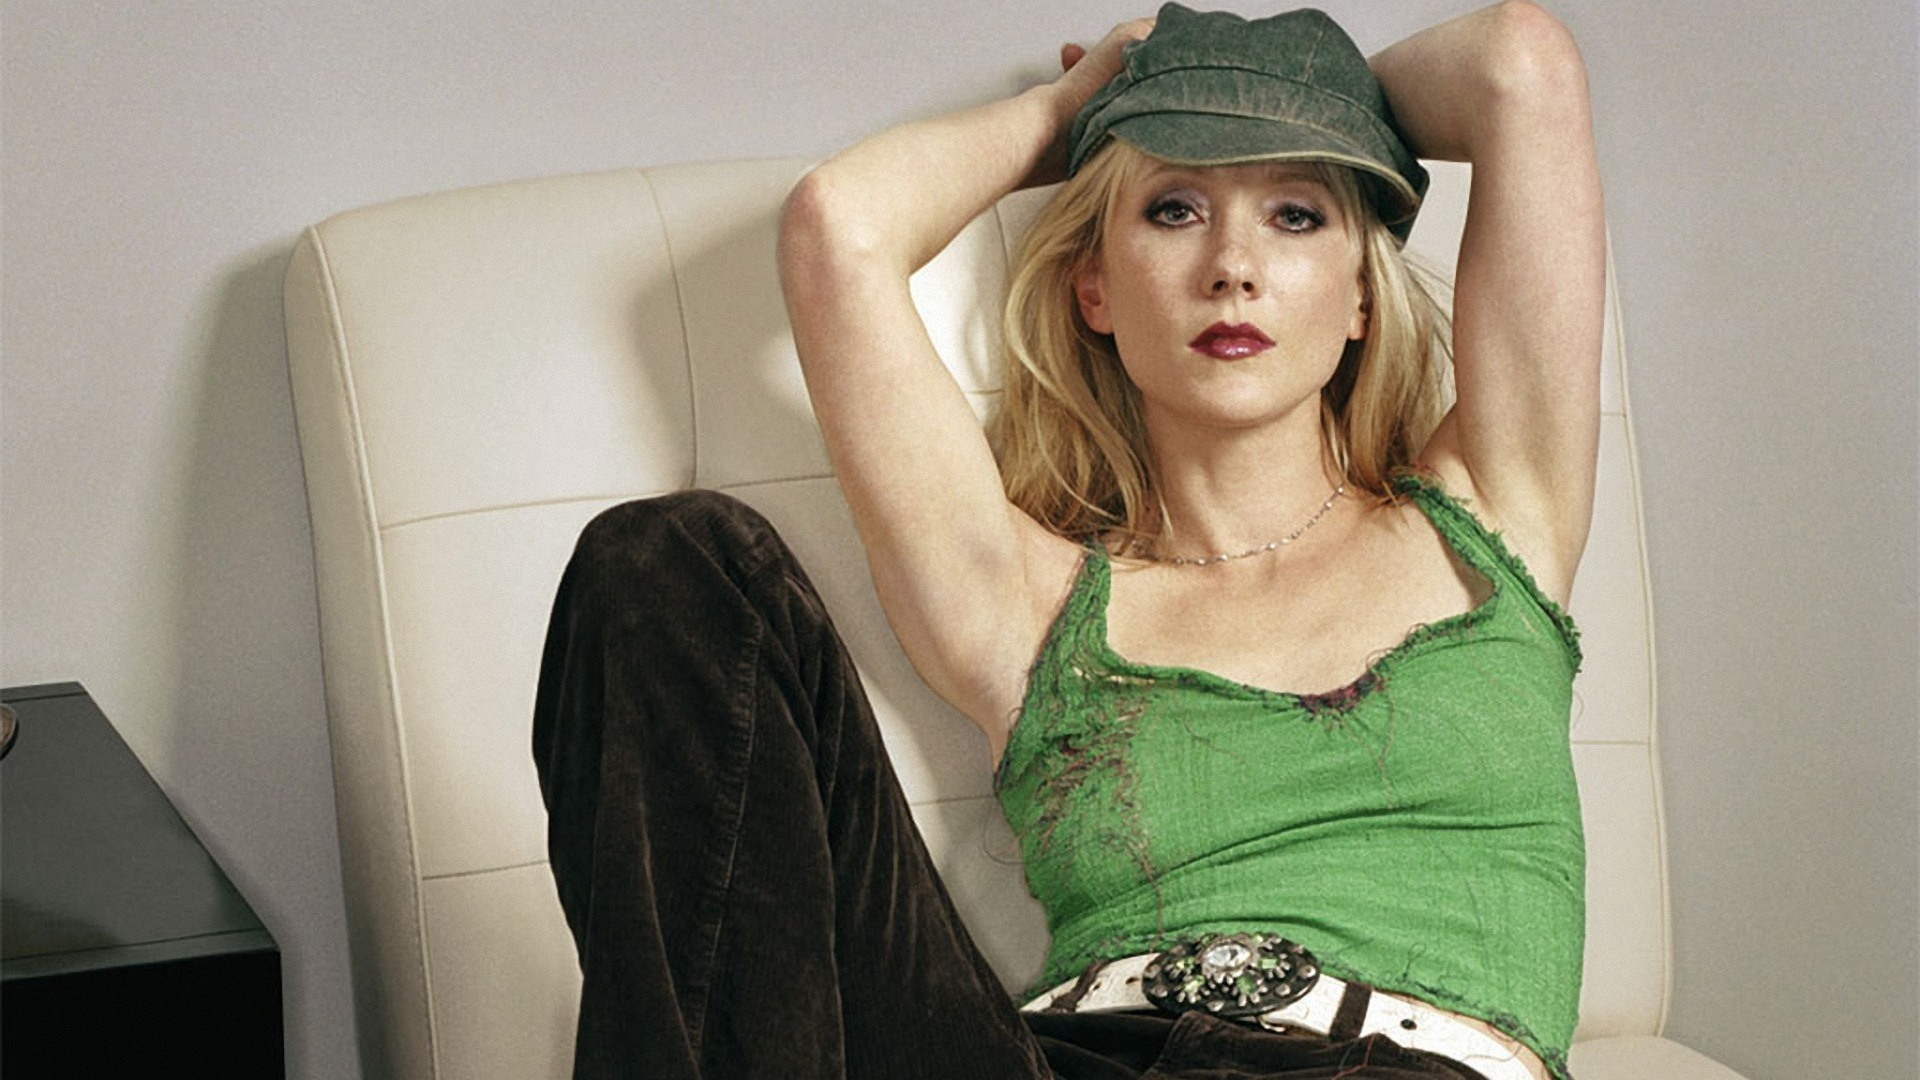 More 38 Anne Heche wallpapers, images, photo